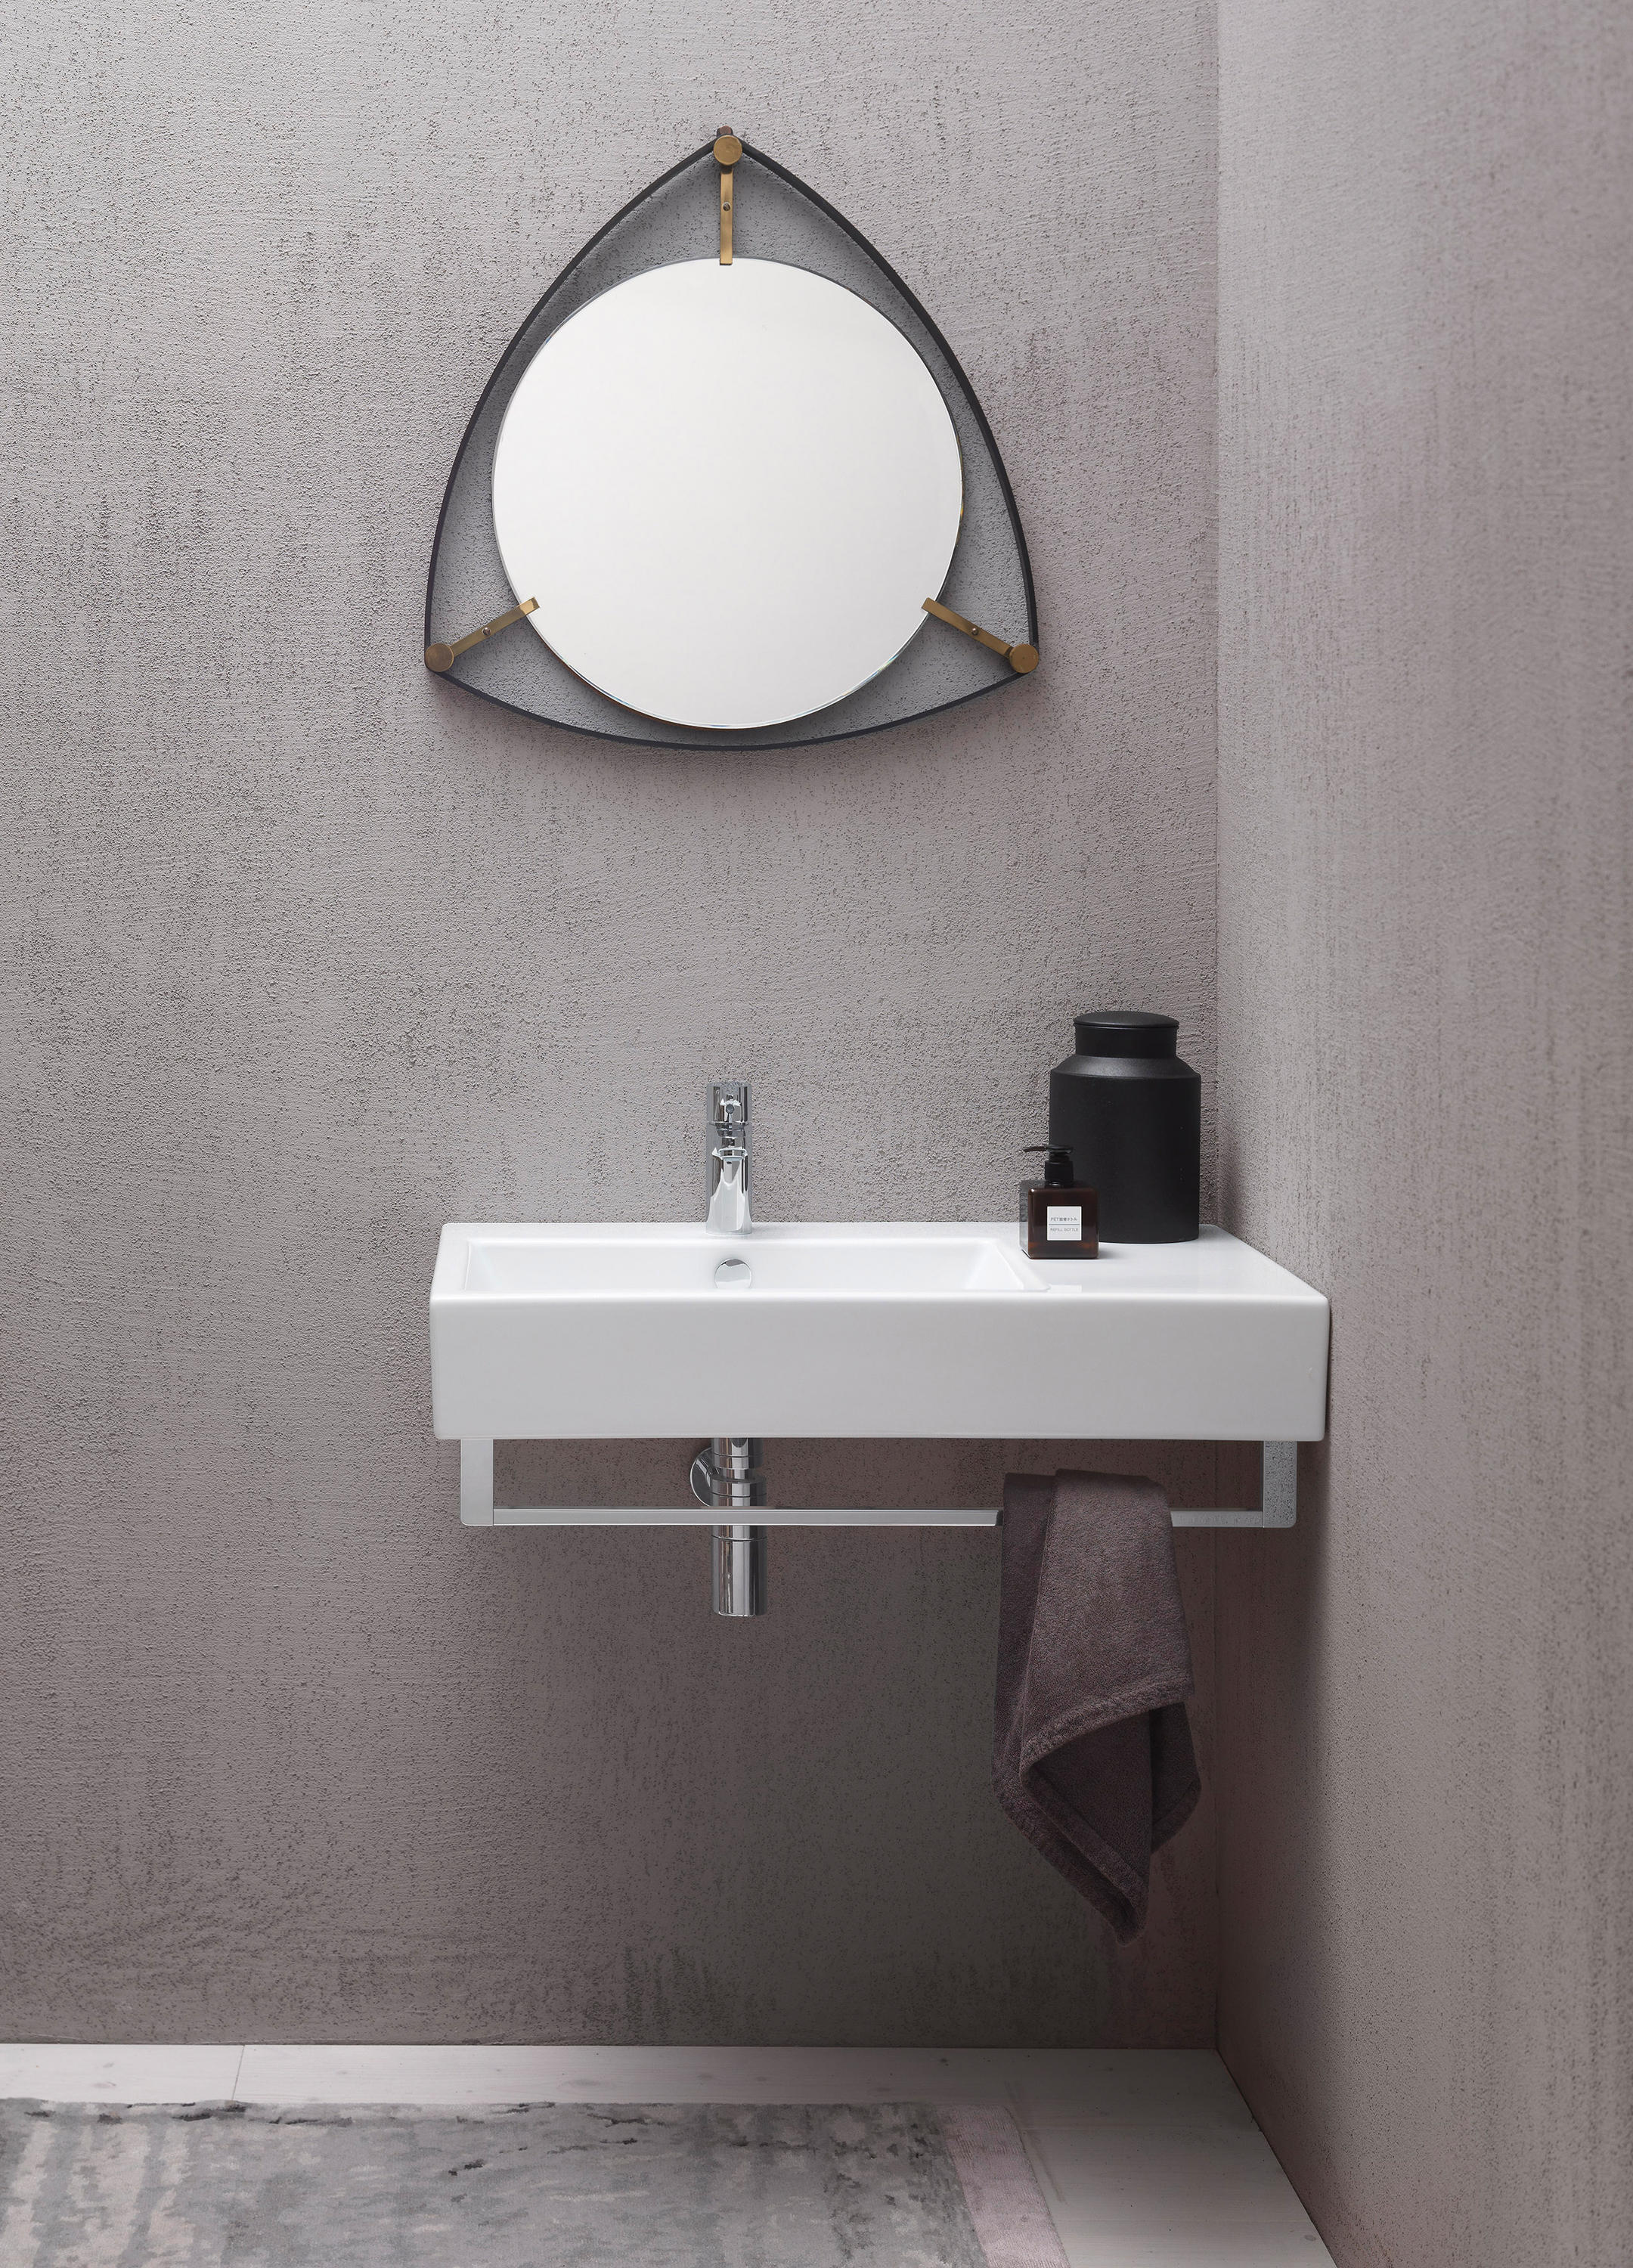 Aufsatzwaschbecken Installation Kube 37 Ti Washbasin Wash Basins From Gsi Ceramica Architonic